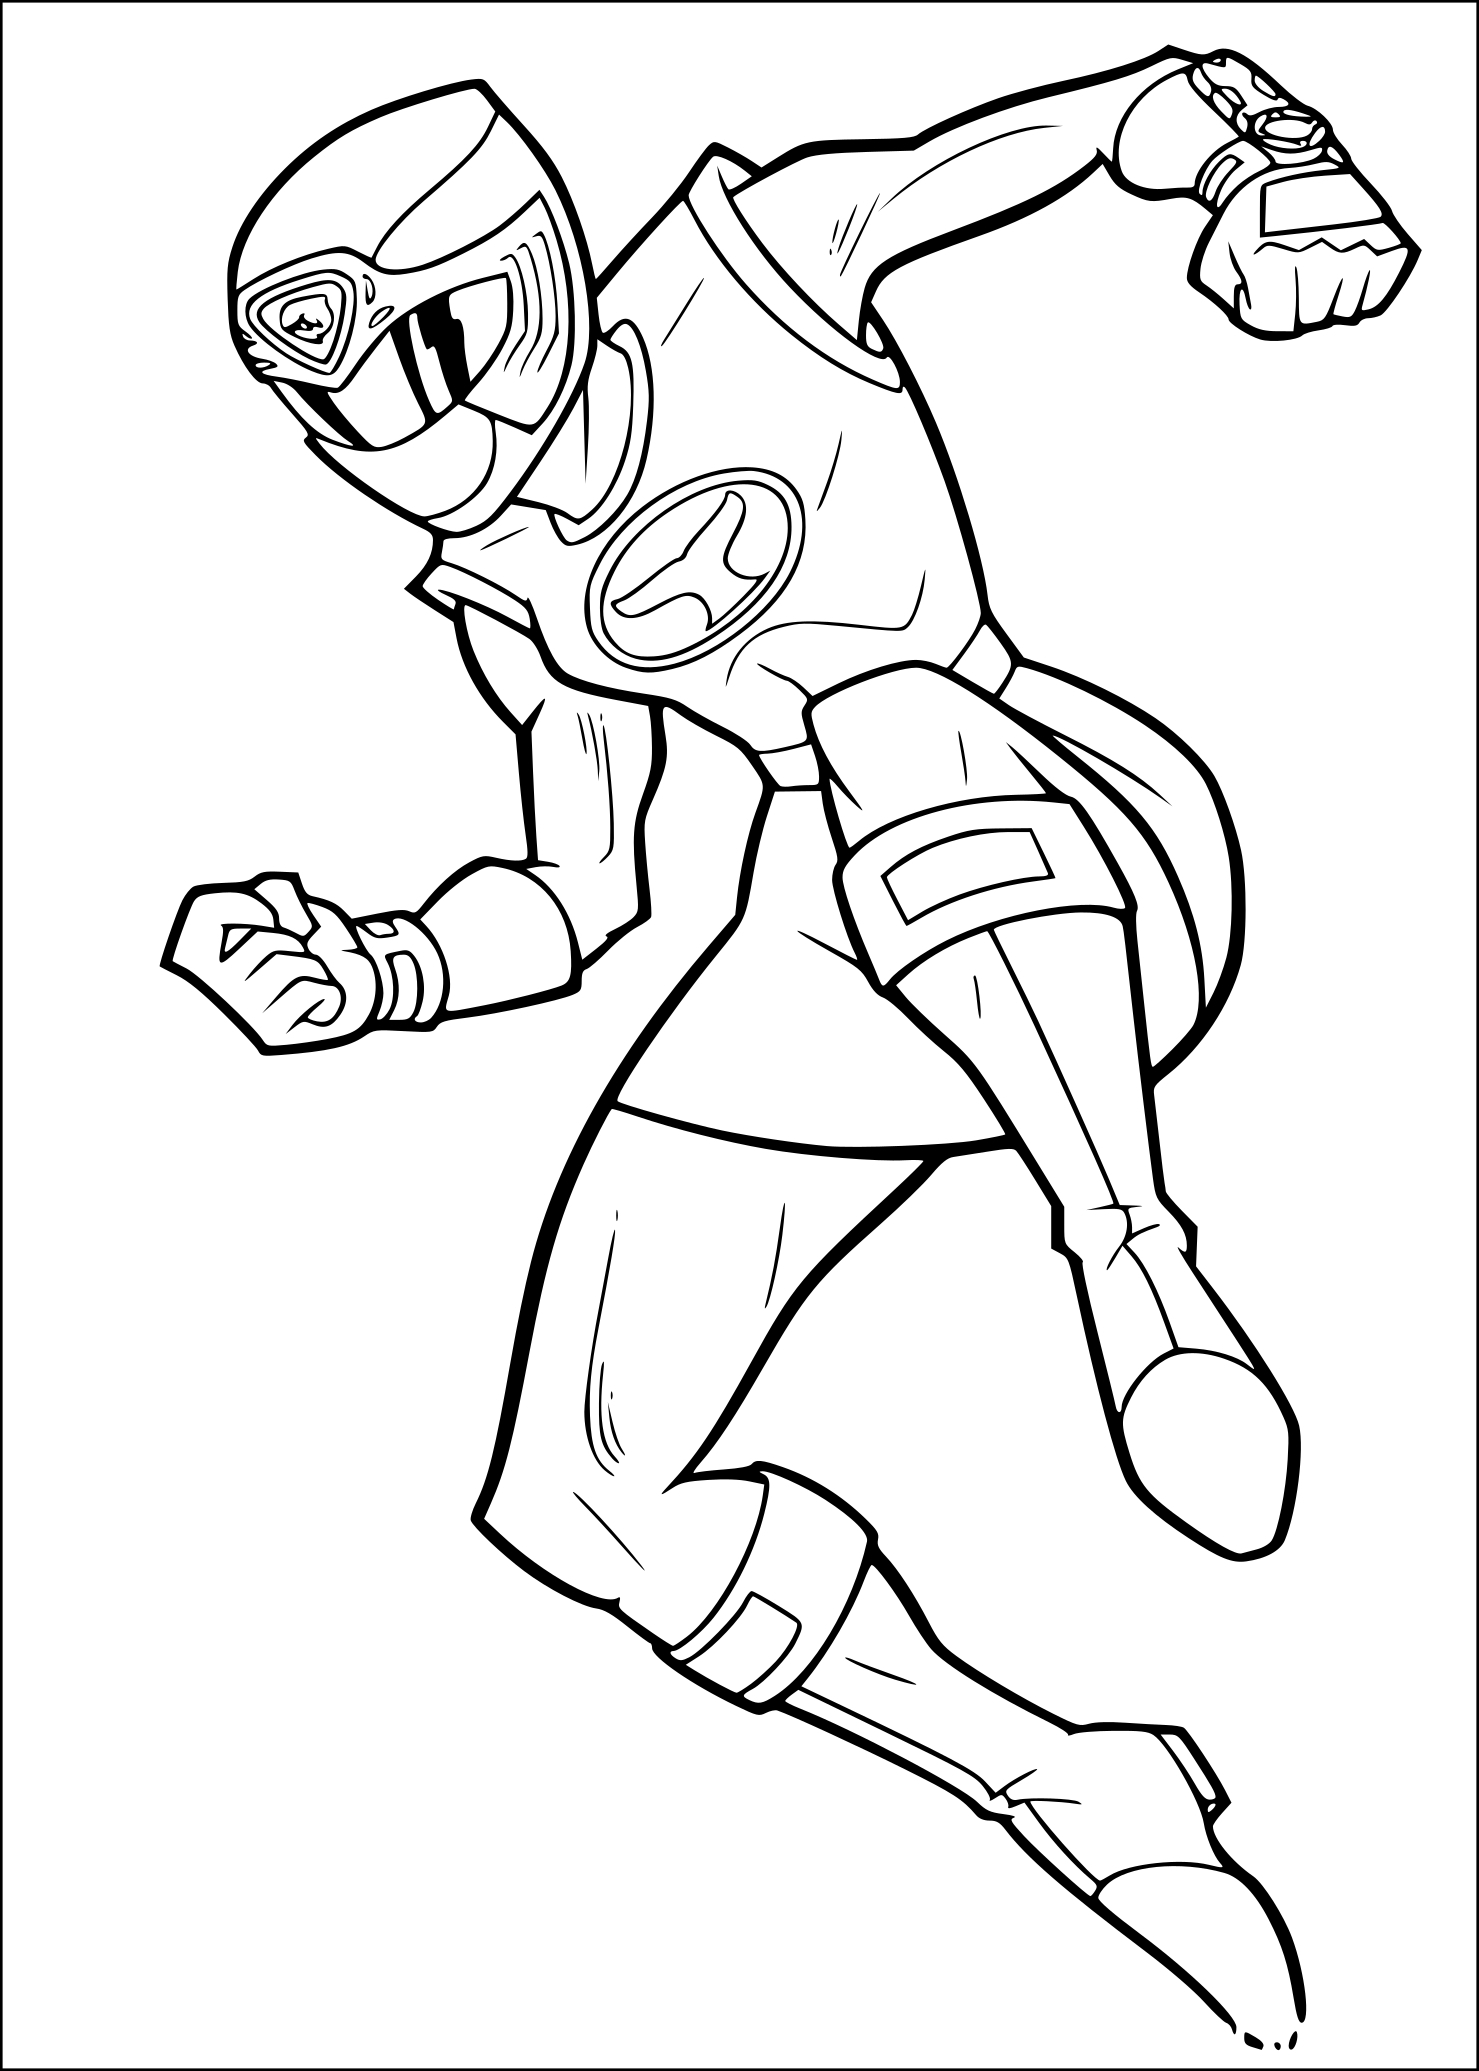 power rangers dino charge coloring pages - coloriagepowerrangersrose